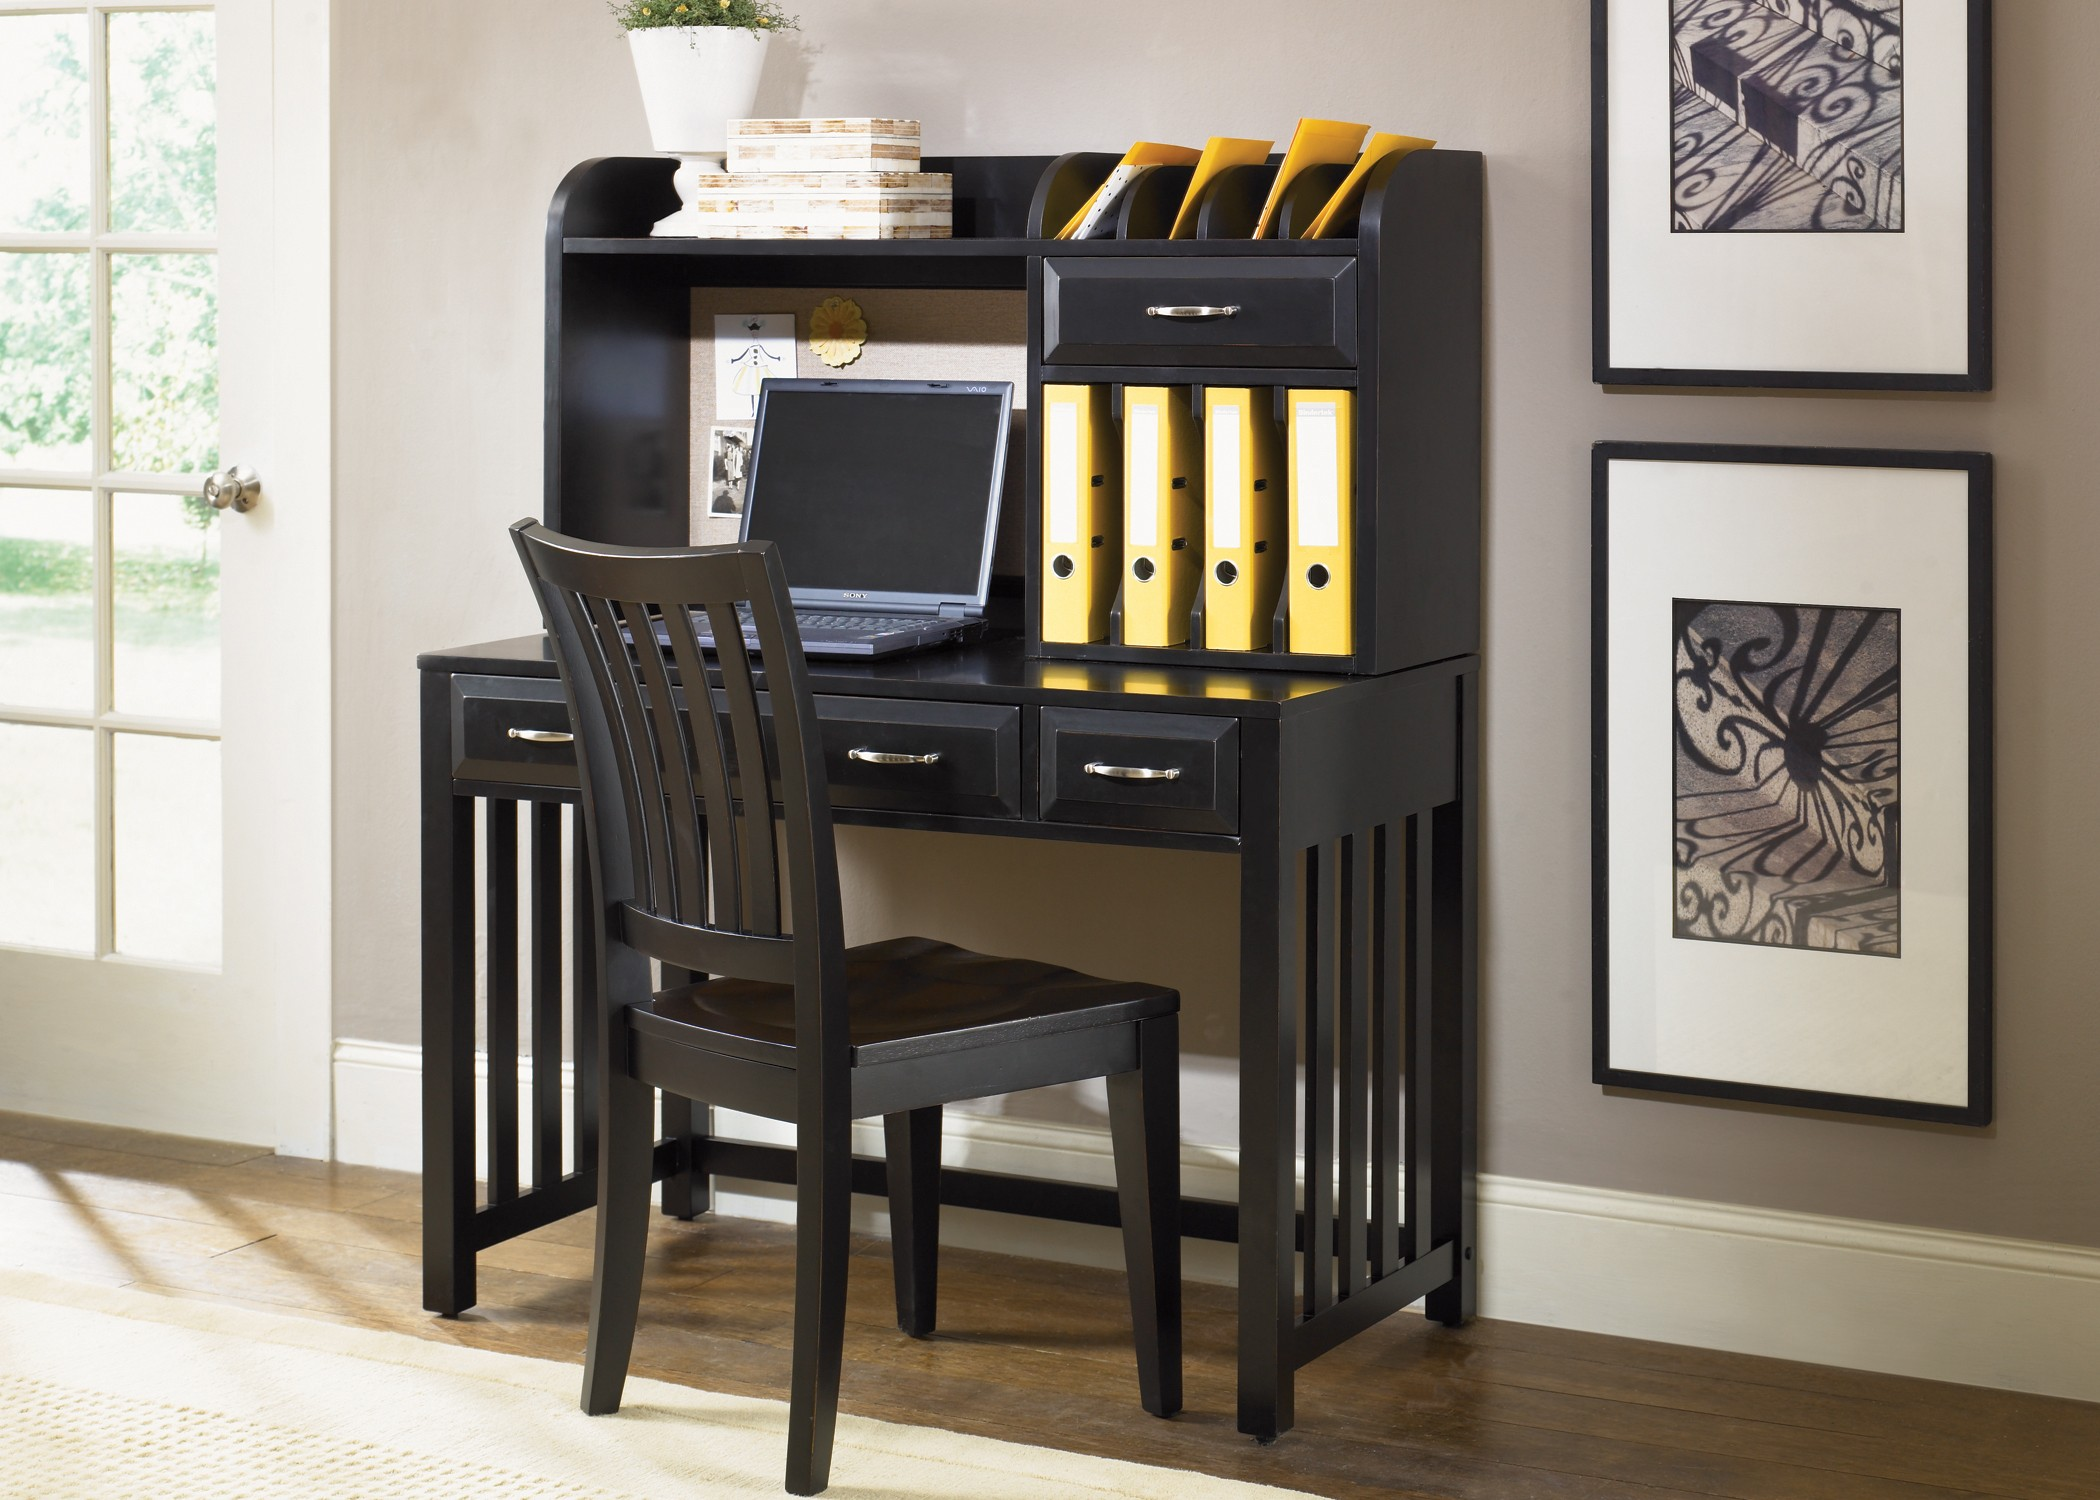 Hampton Bay Black Writing Desk with Hutch from Liberty (717-HO111-HO140) | Coleman Furniture